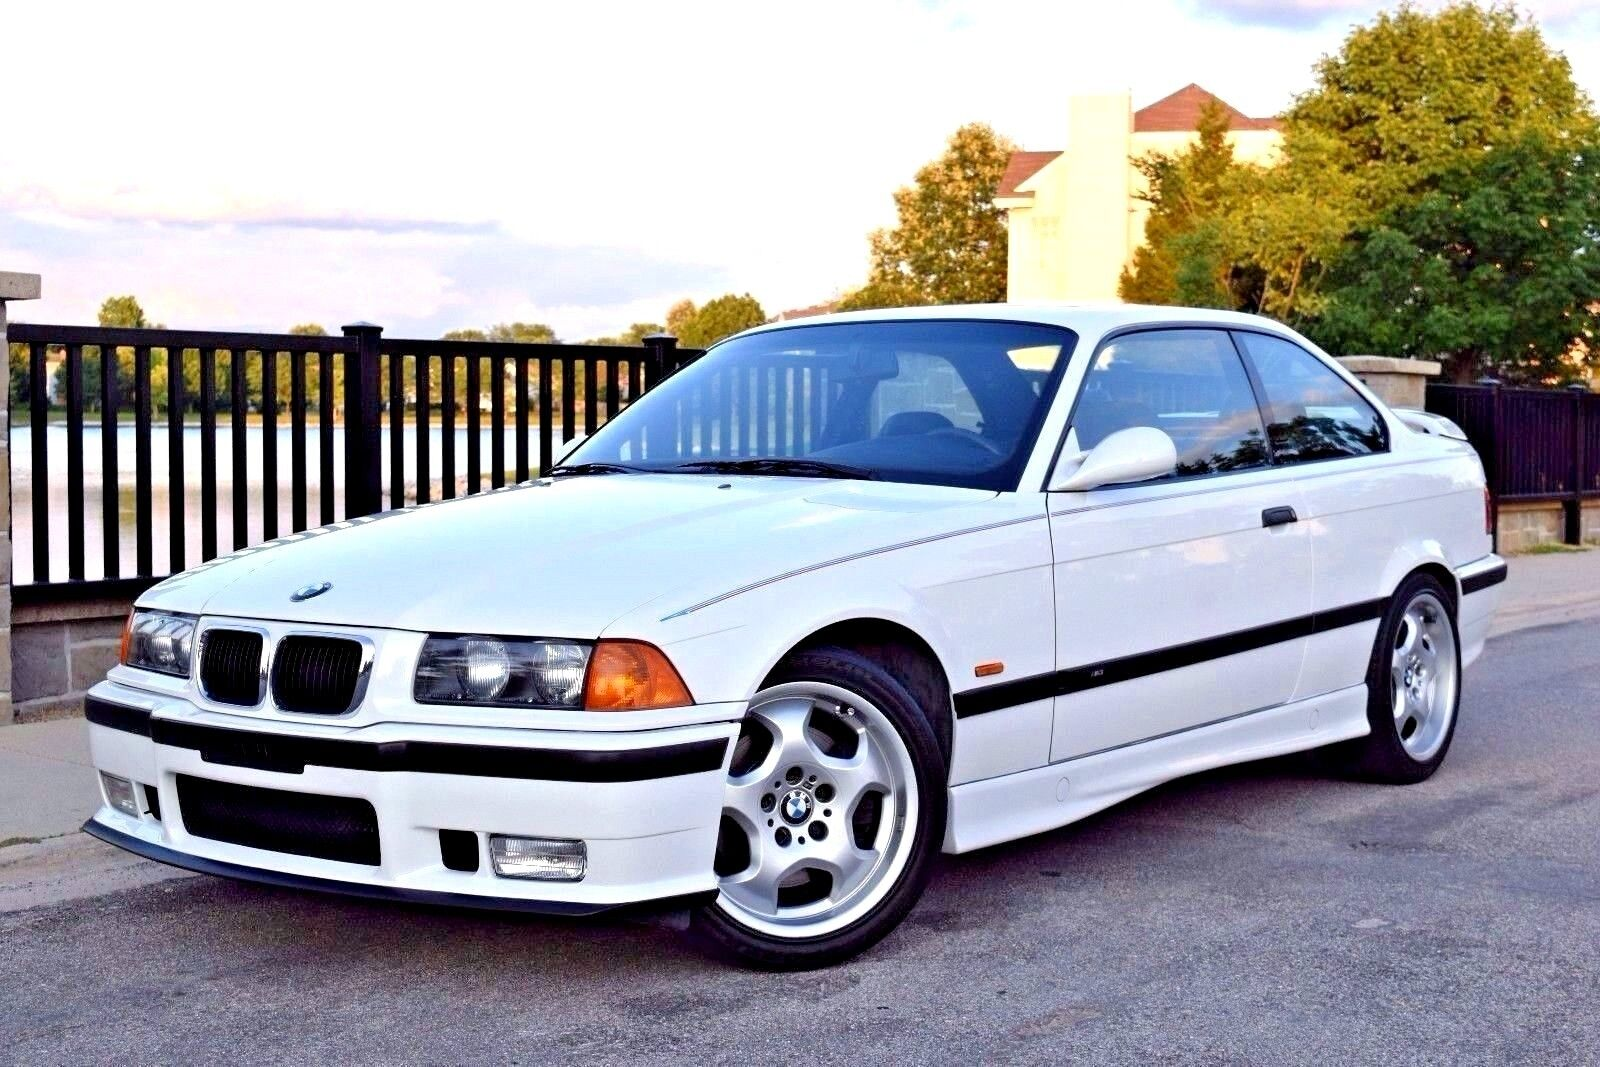 1999 BMW M3  1999 BMW M3 Coupe Alpine White/Black Vader Seats 100% Stock Immaculate 34k Miles